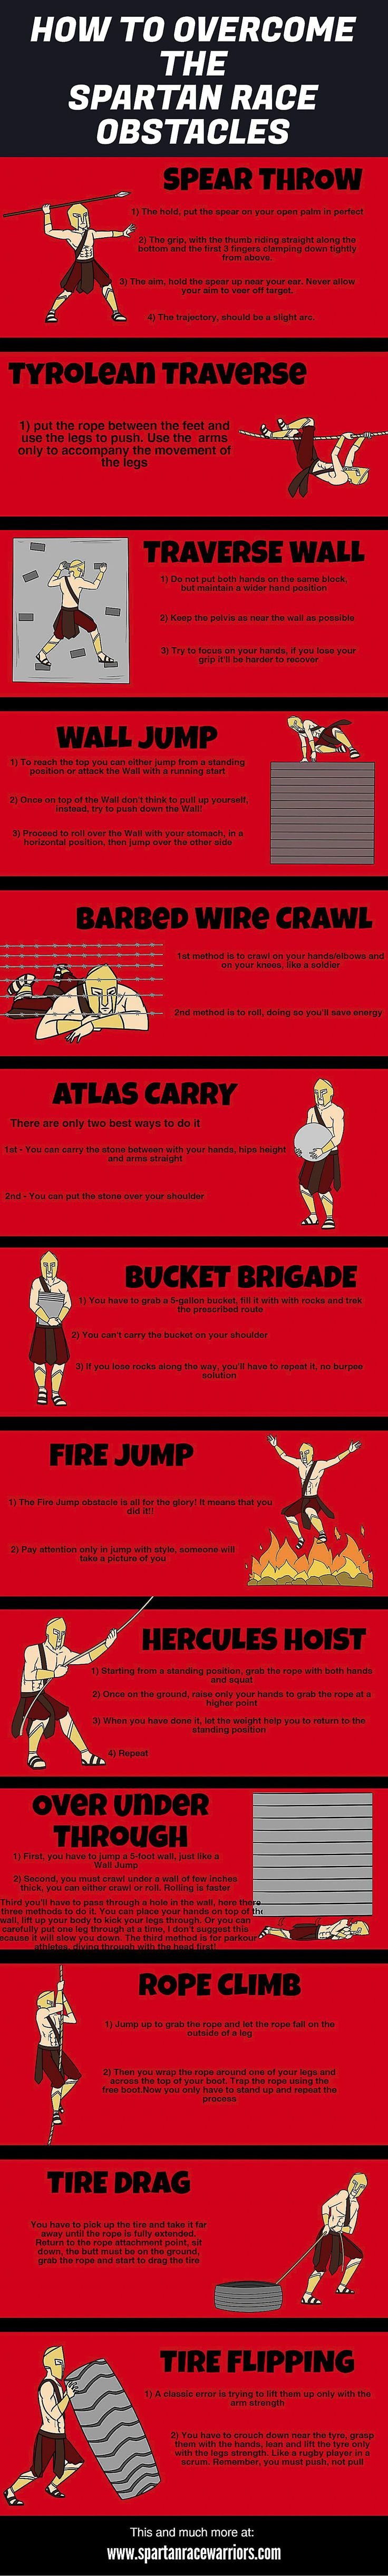 how to overcome obstacles in a spartan race infographics